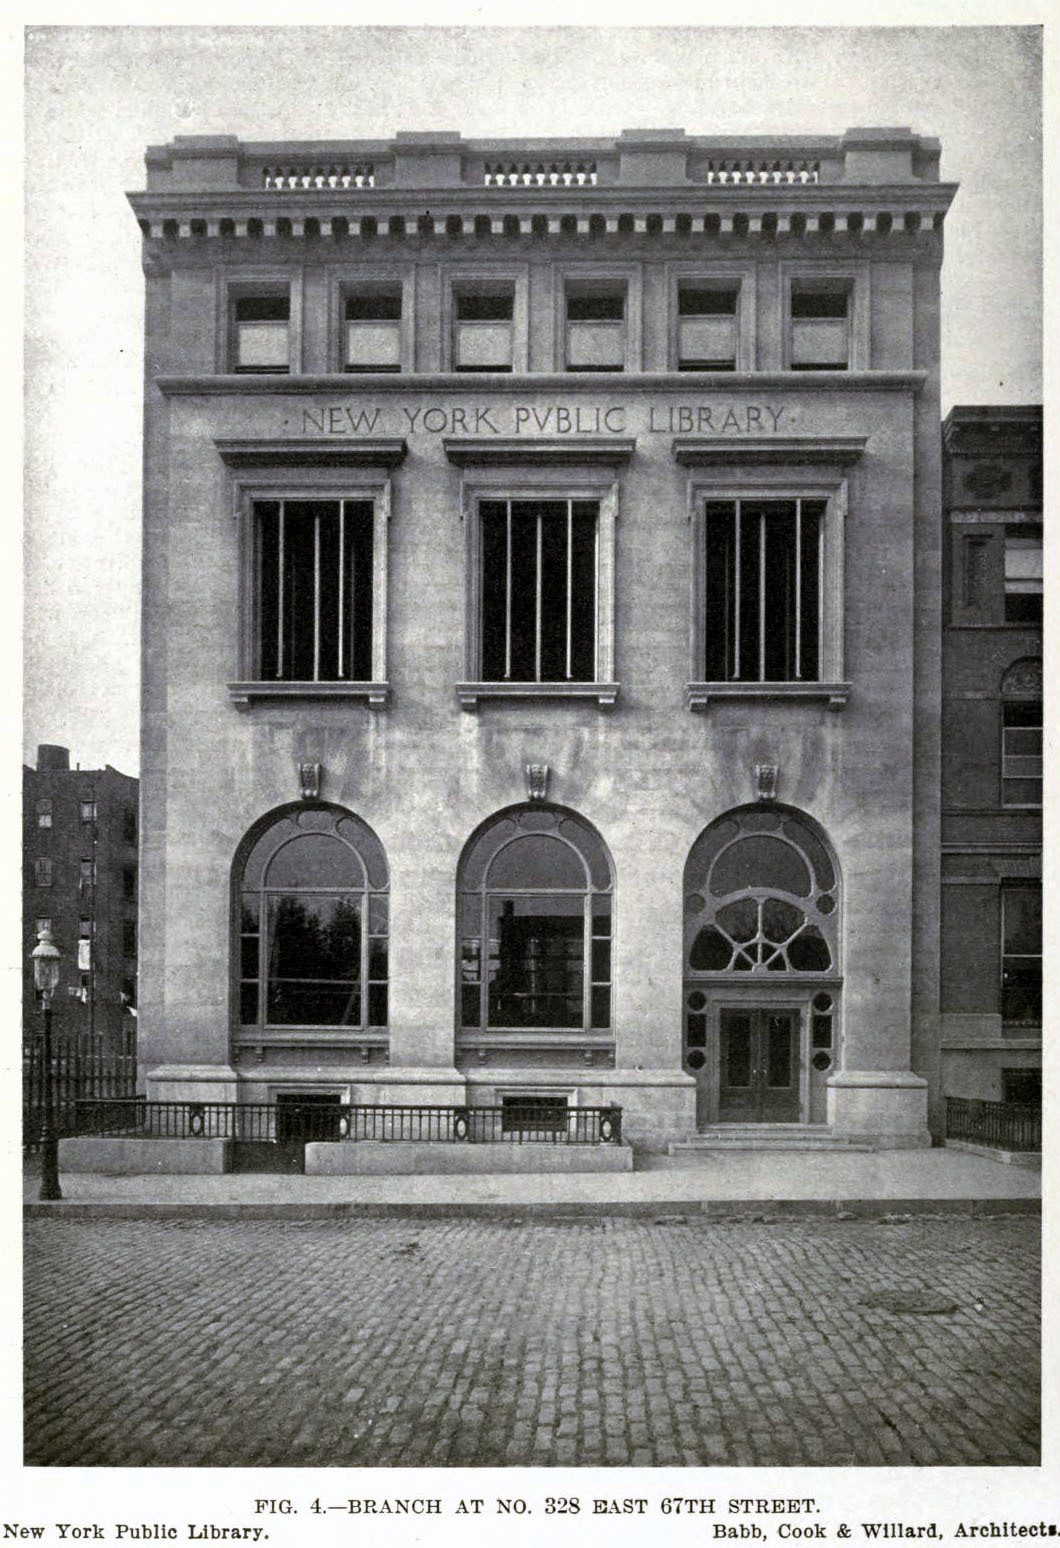 The New York Public Library Branch at 328 East 67th Street, New York City